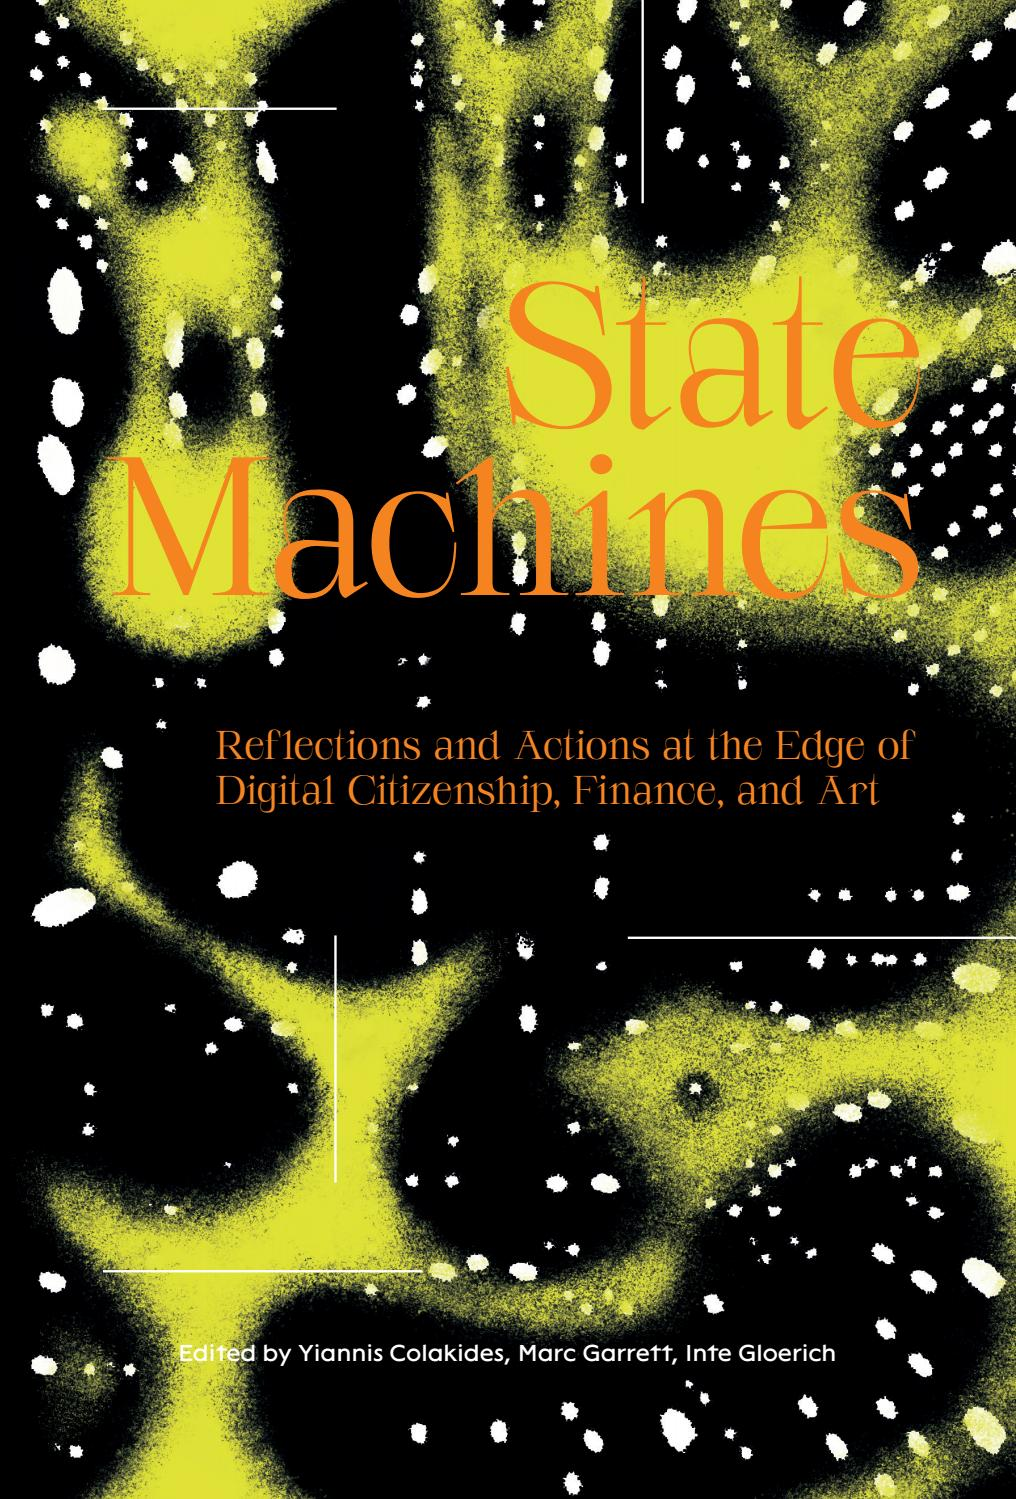 State Machines: Reflections and Actions at the Edge of